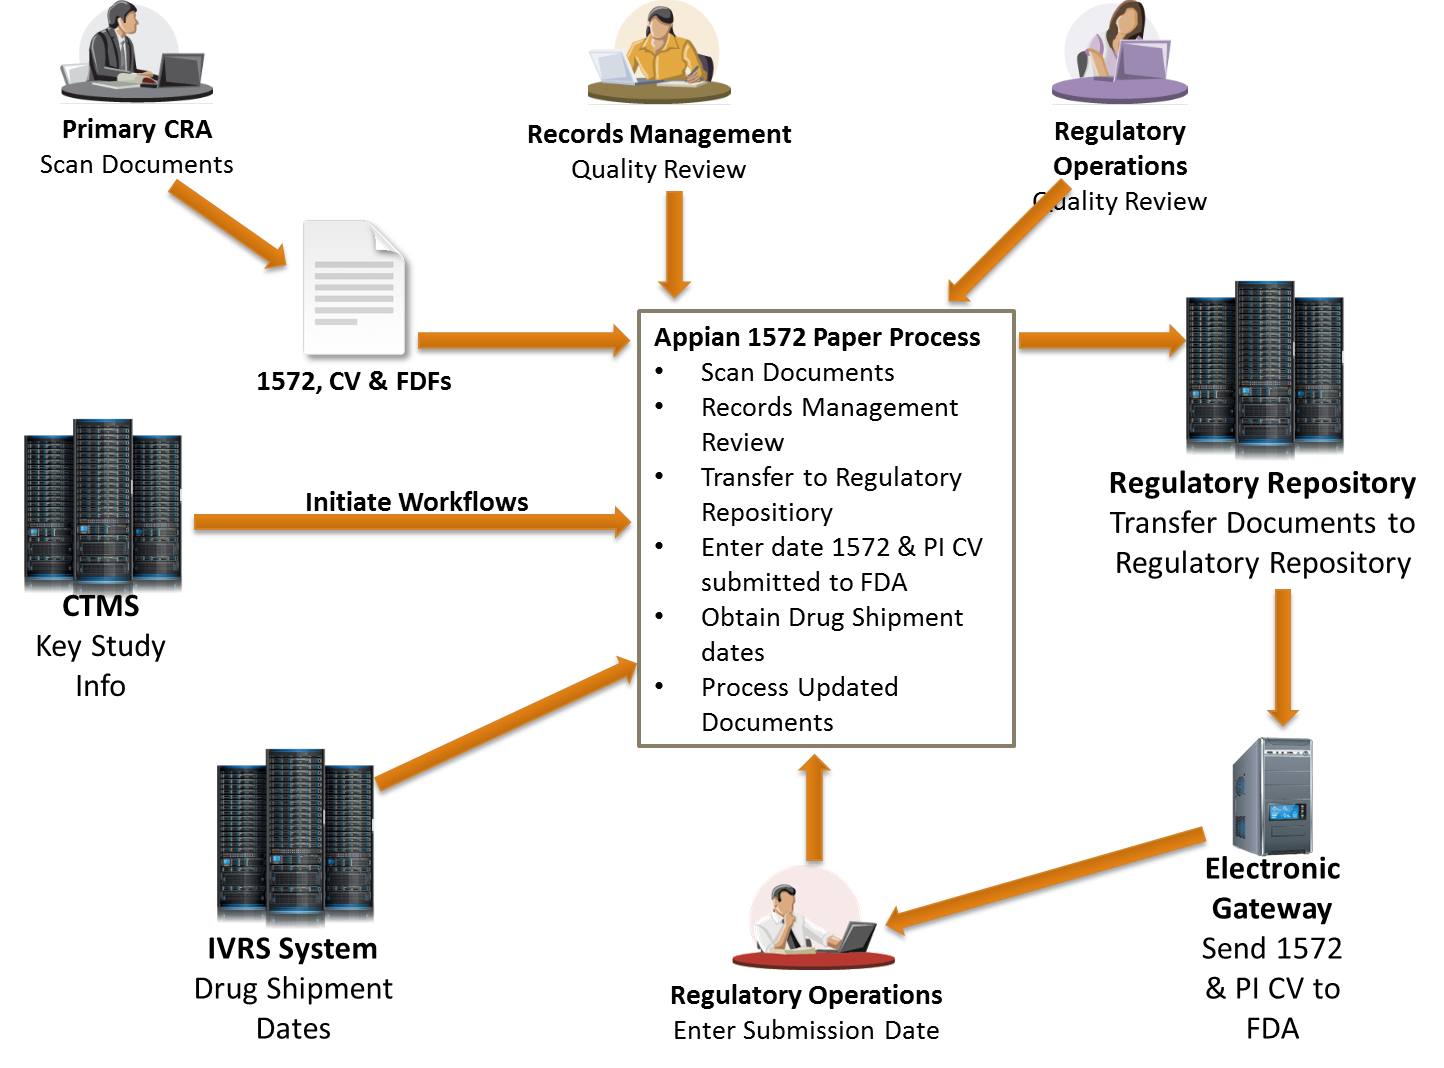 Appian 1572 Process Flow